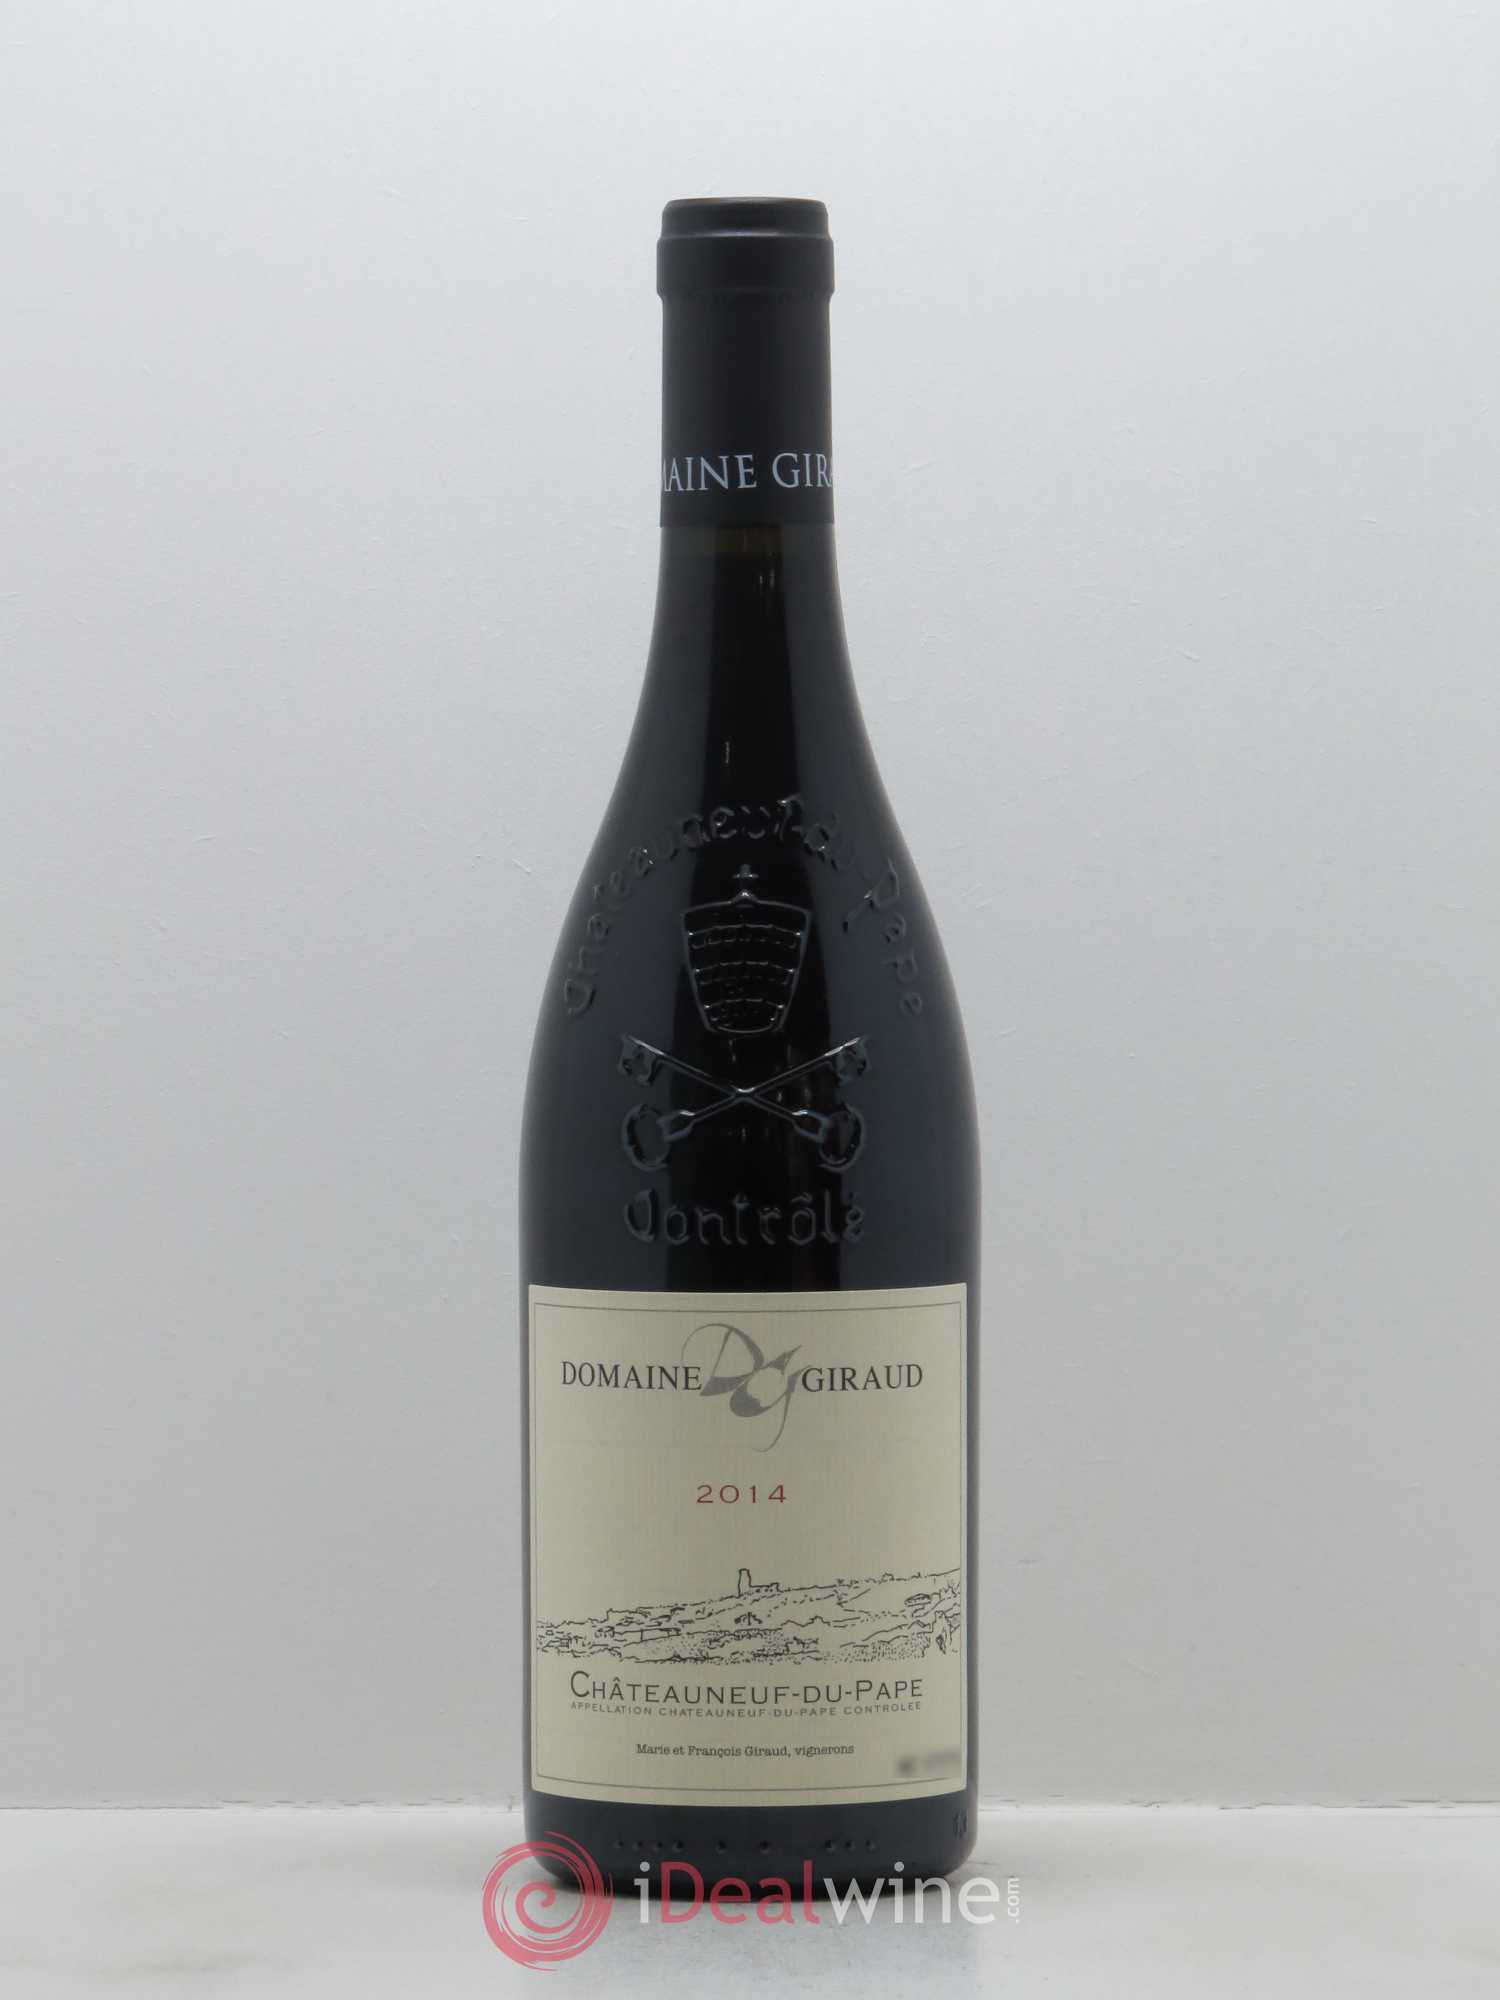 Châteauneuf-du-Pape Giraud (Domaine) Tradition  2014 - Lot of 1 Bottle